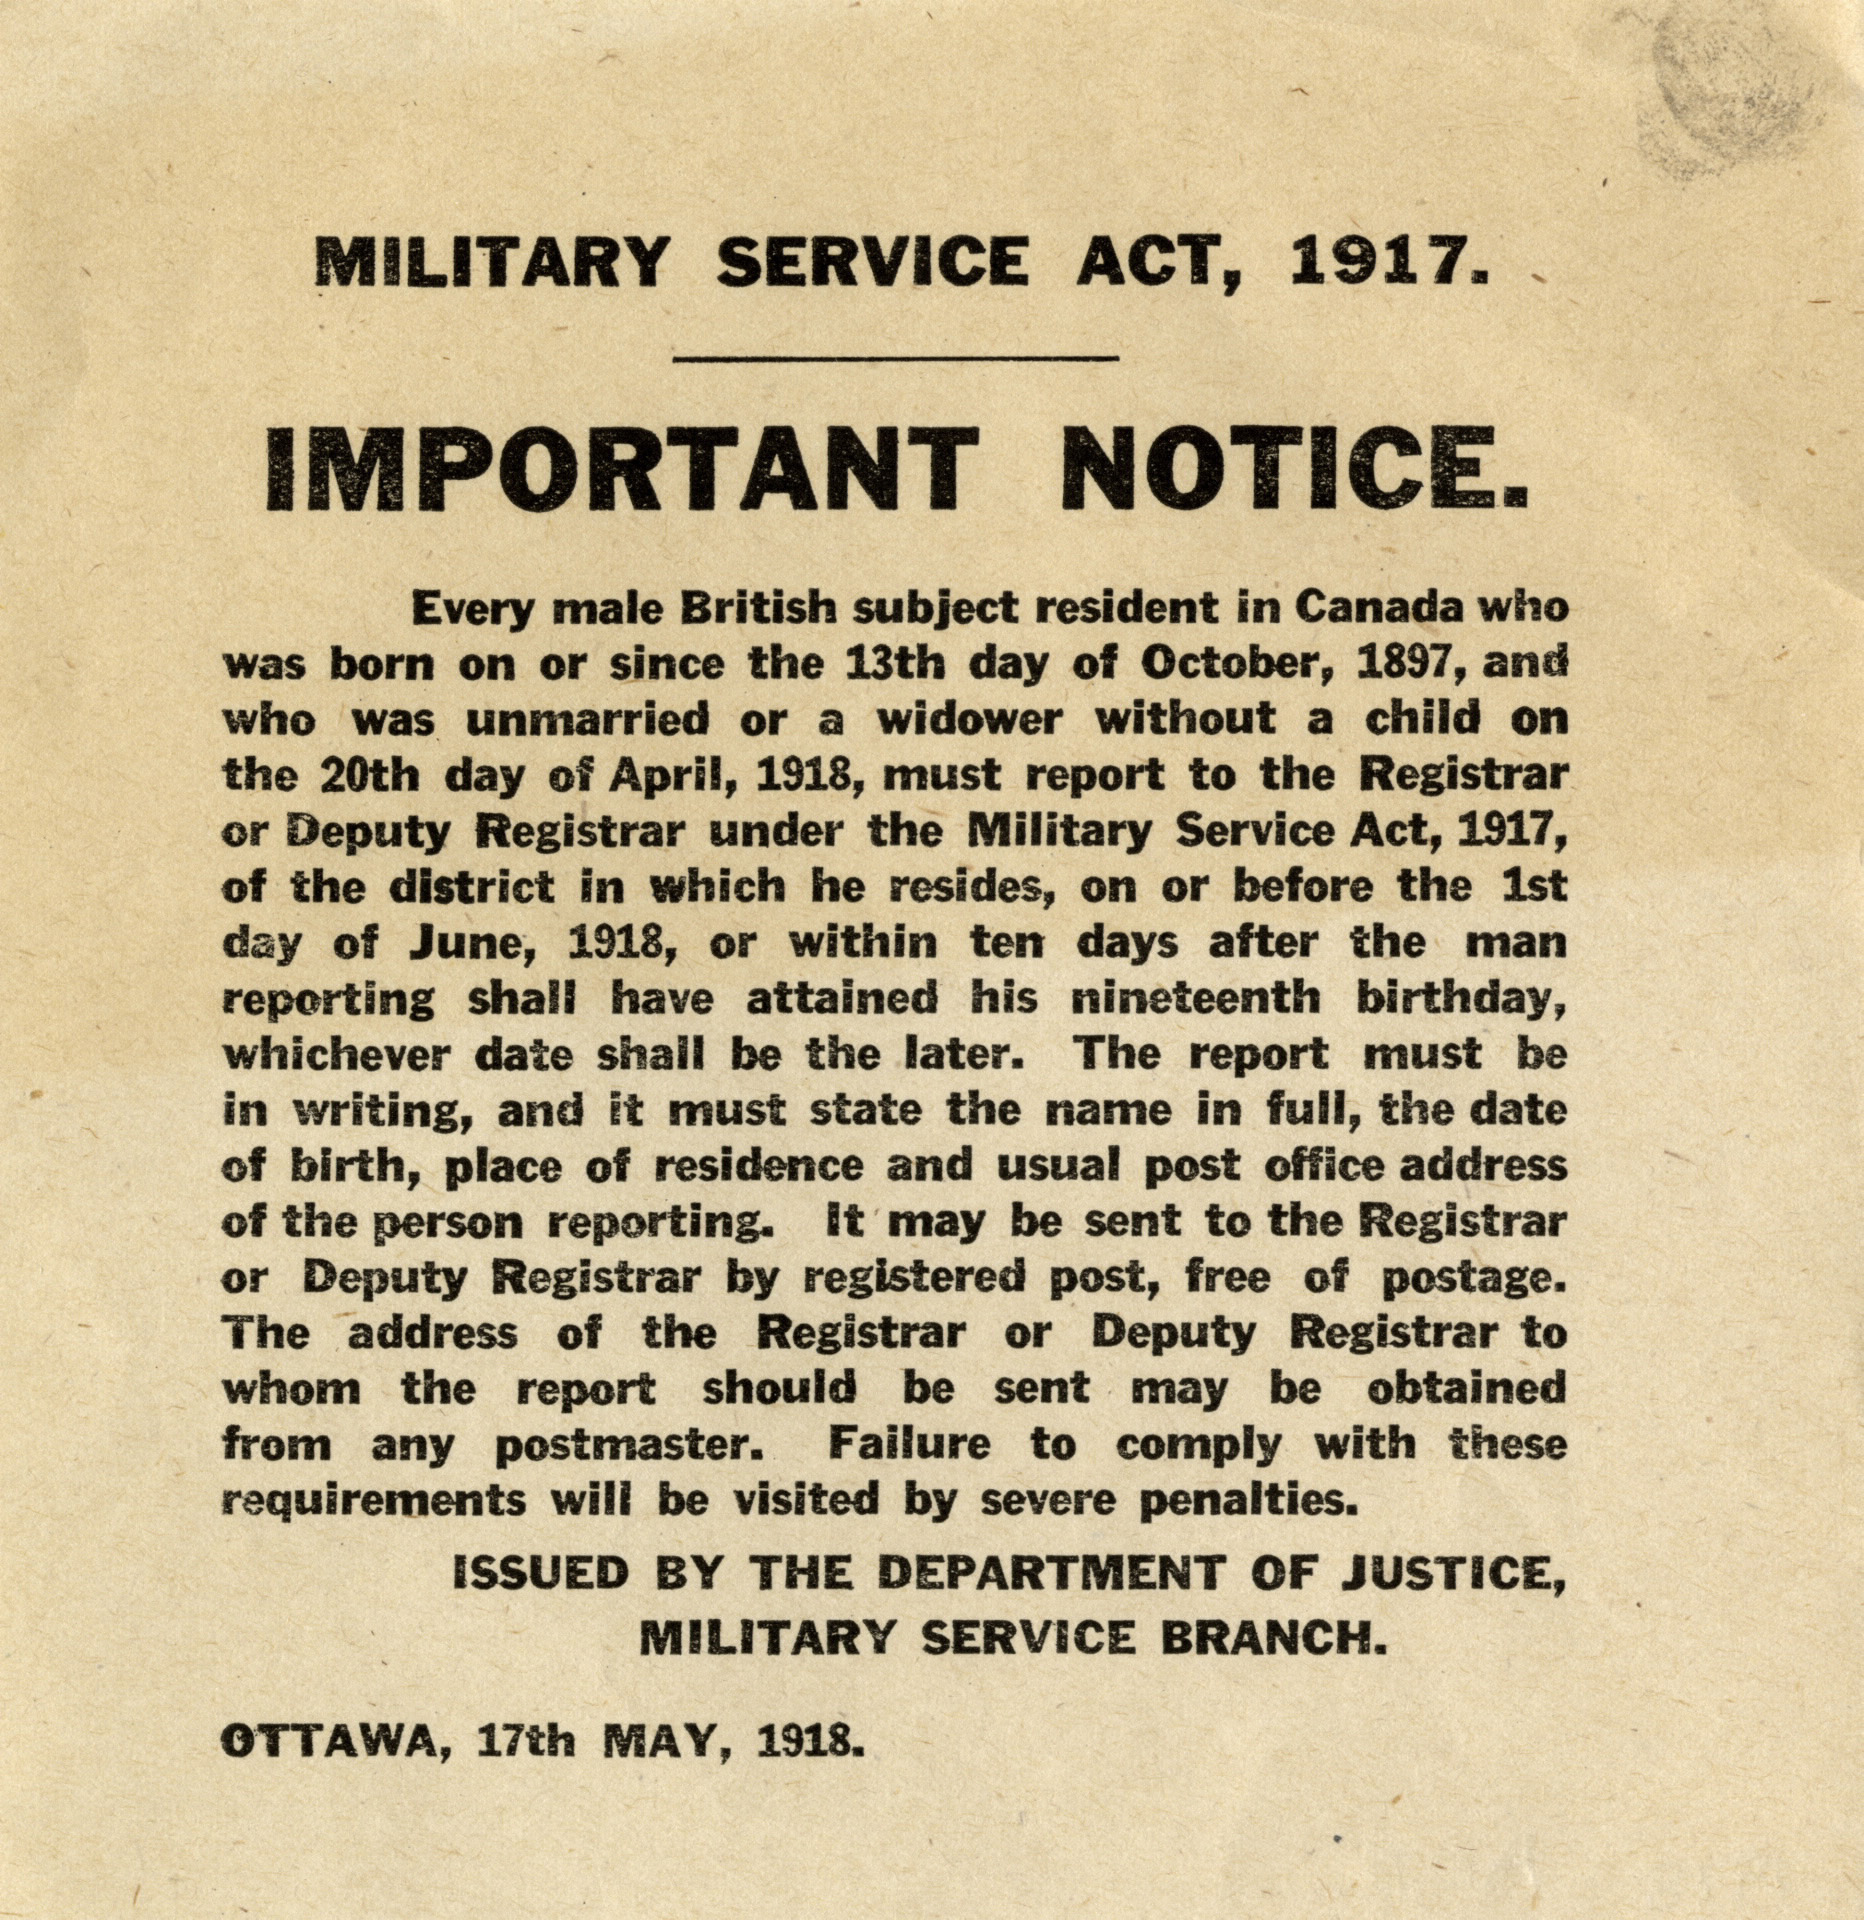 Conscription divided Canada  It also helped win the First